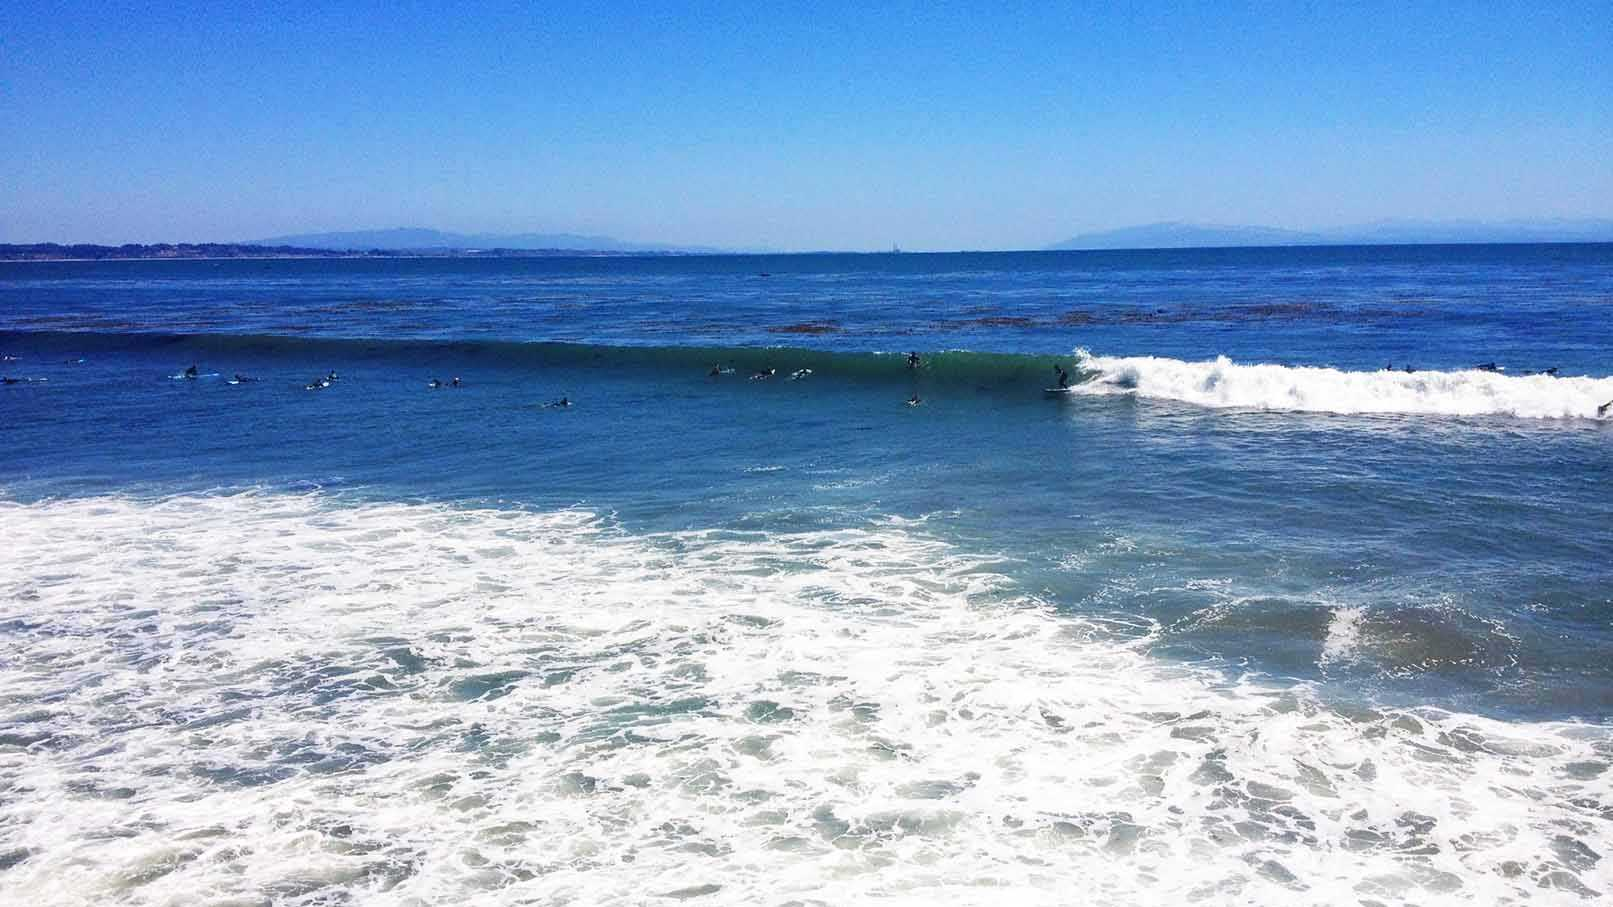 A hurricane off Mexico generated a fun-sized swell for surfers in Santa Cruz on Sunday.